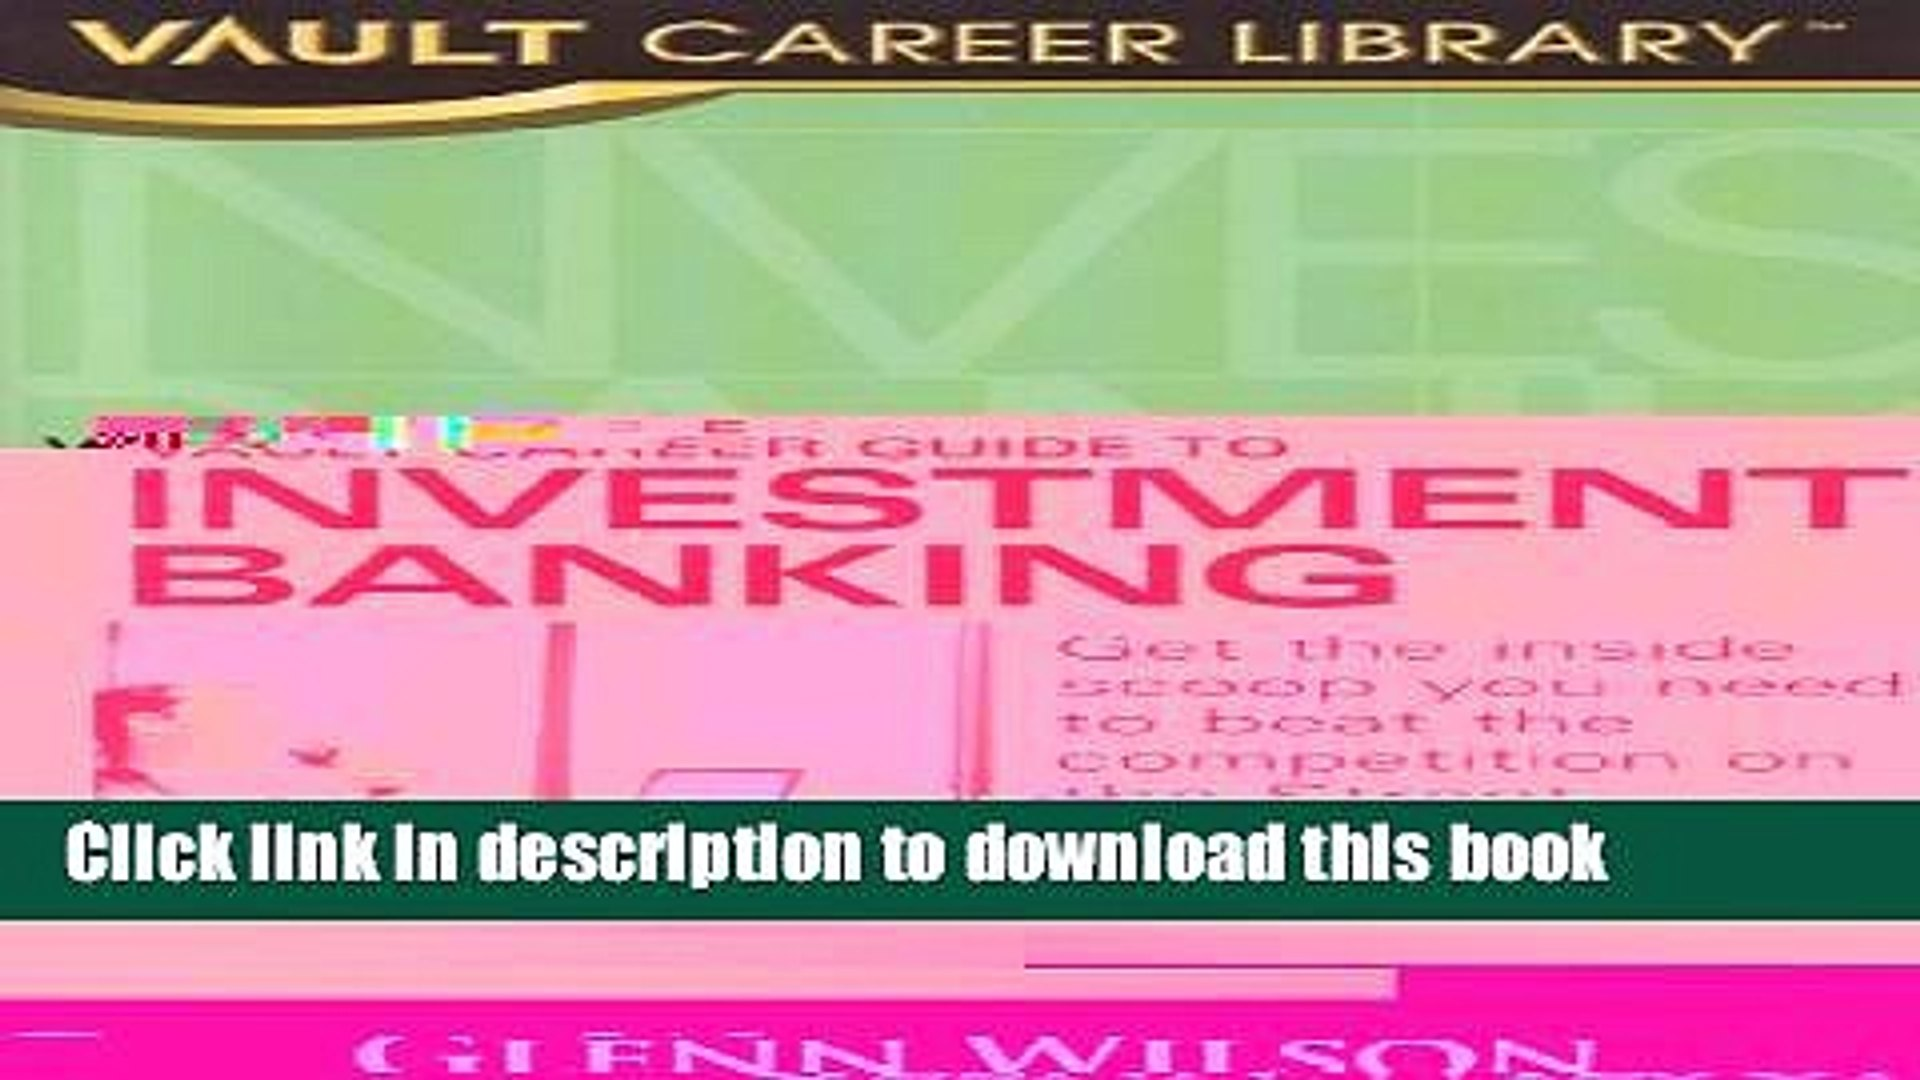 [Popular] Vault Career Guide to Investment Banking Hardcover Online